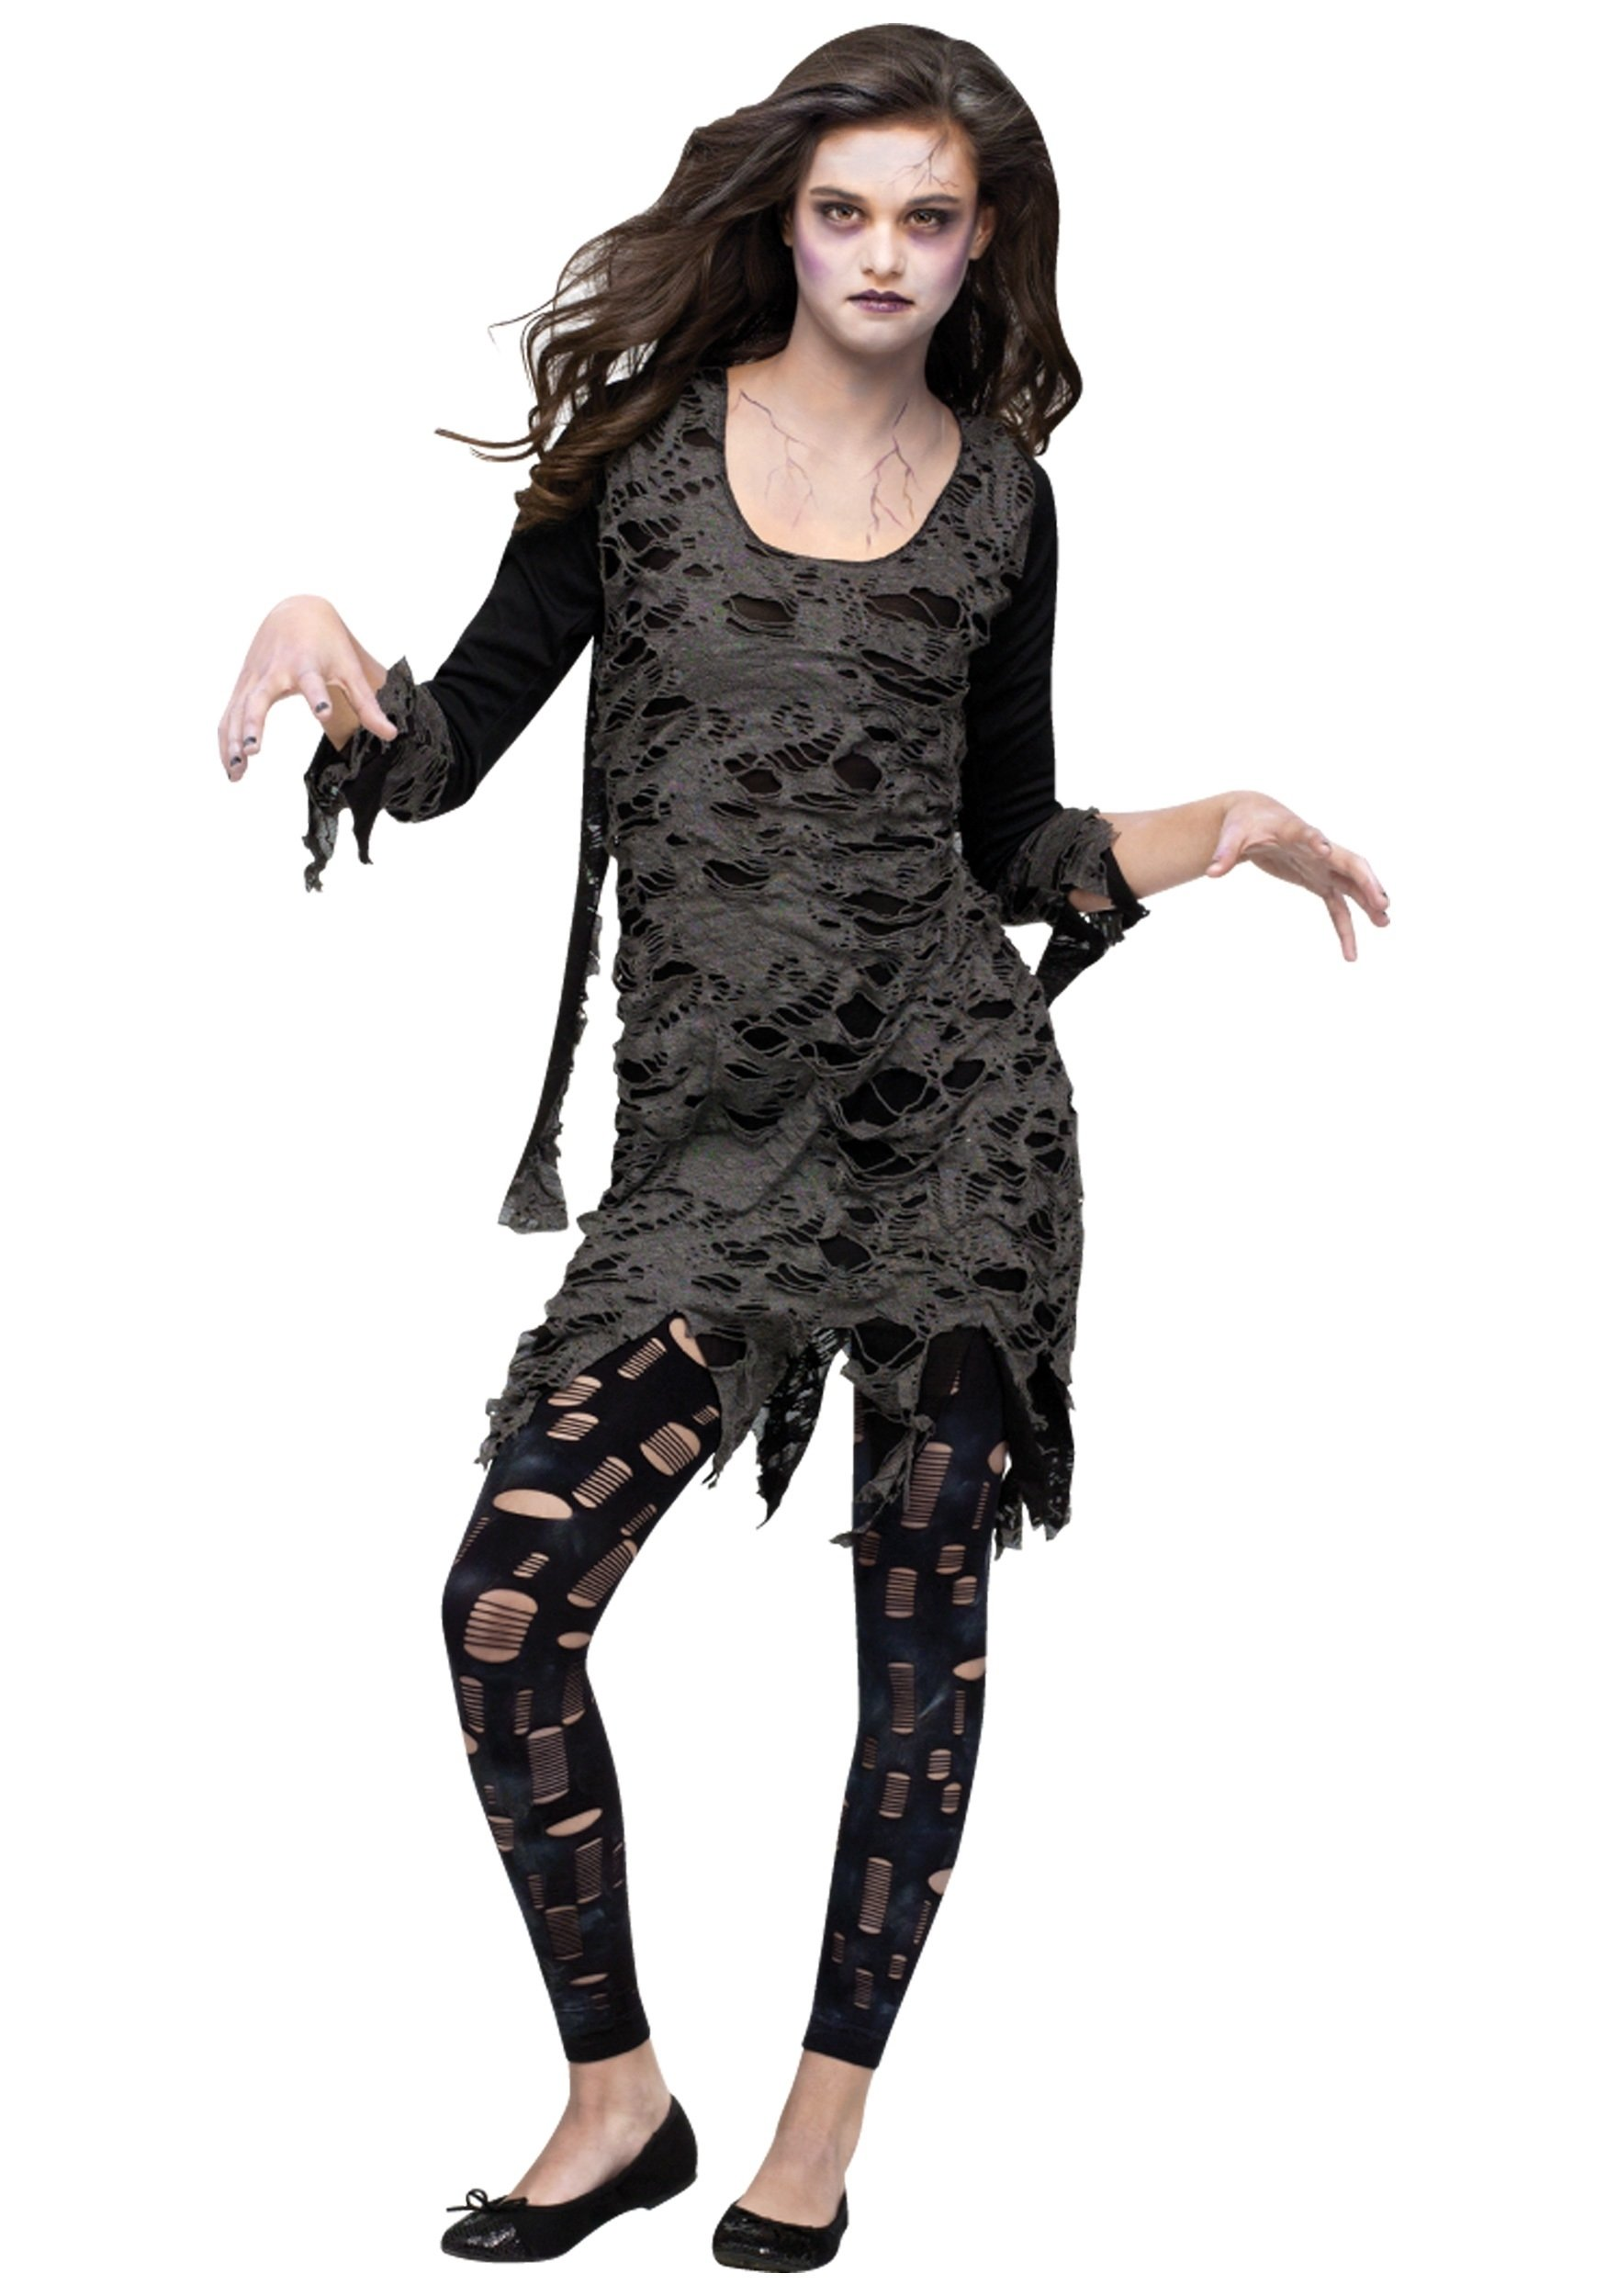 10 Amazing Zombie Costume Ideas For Girls teen living dead costume 3